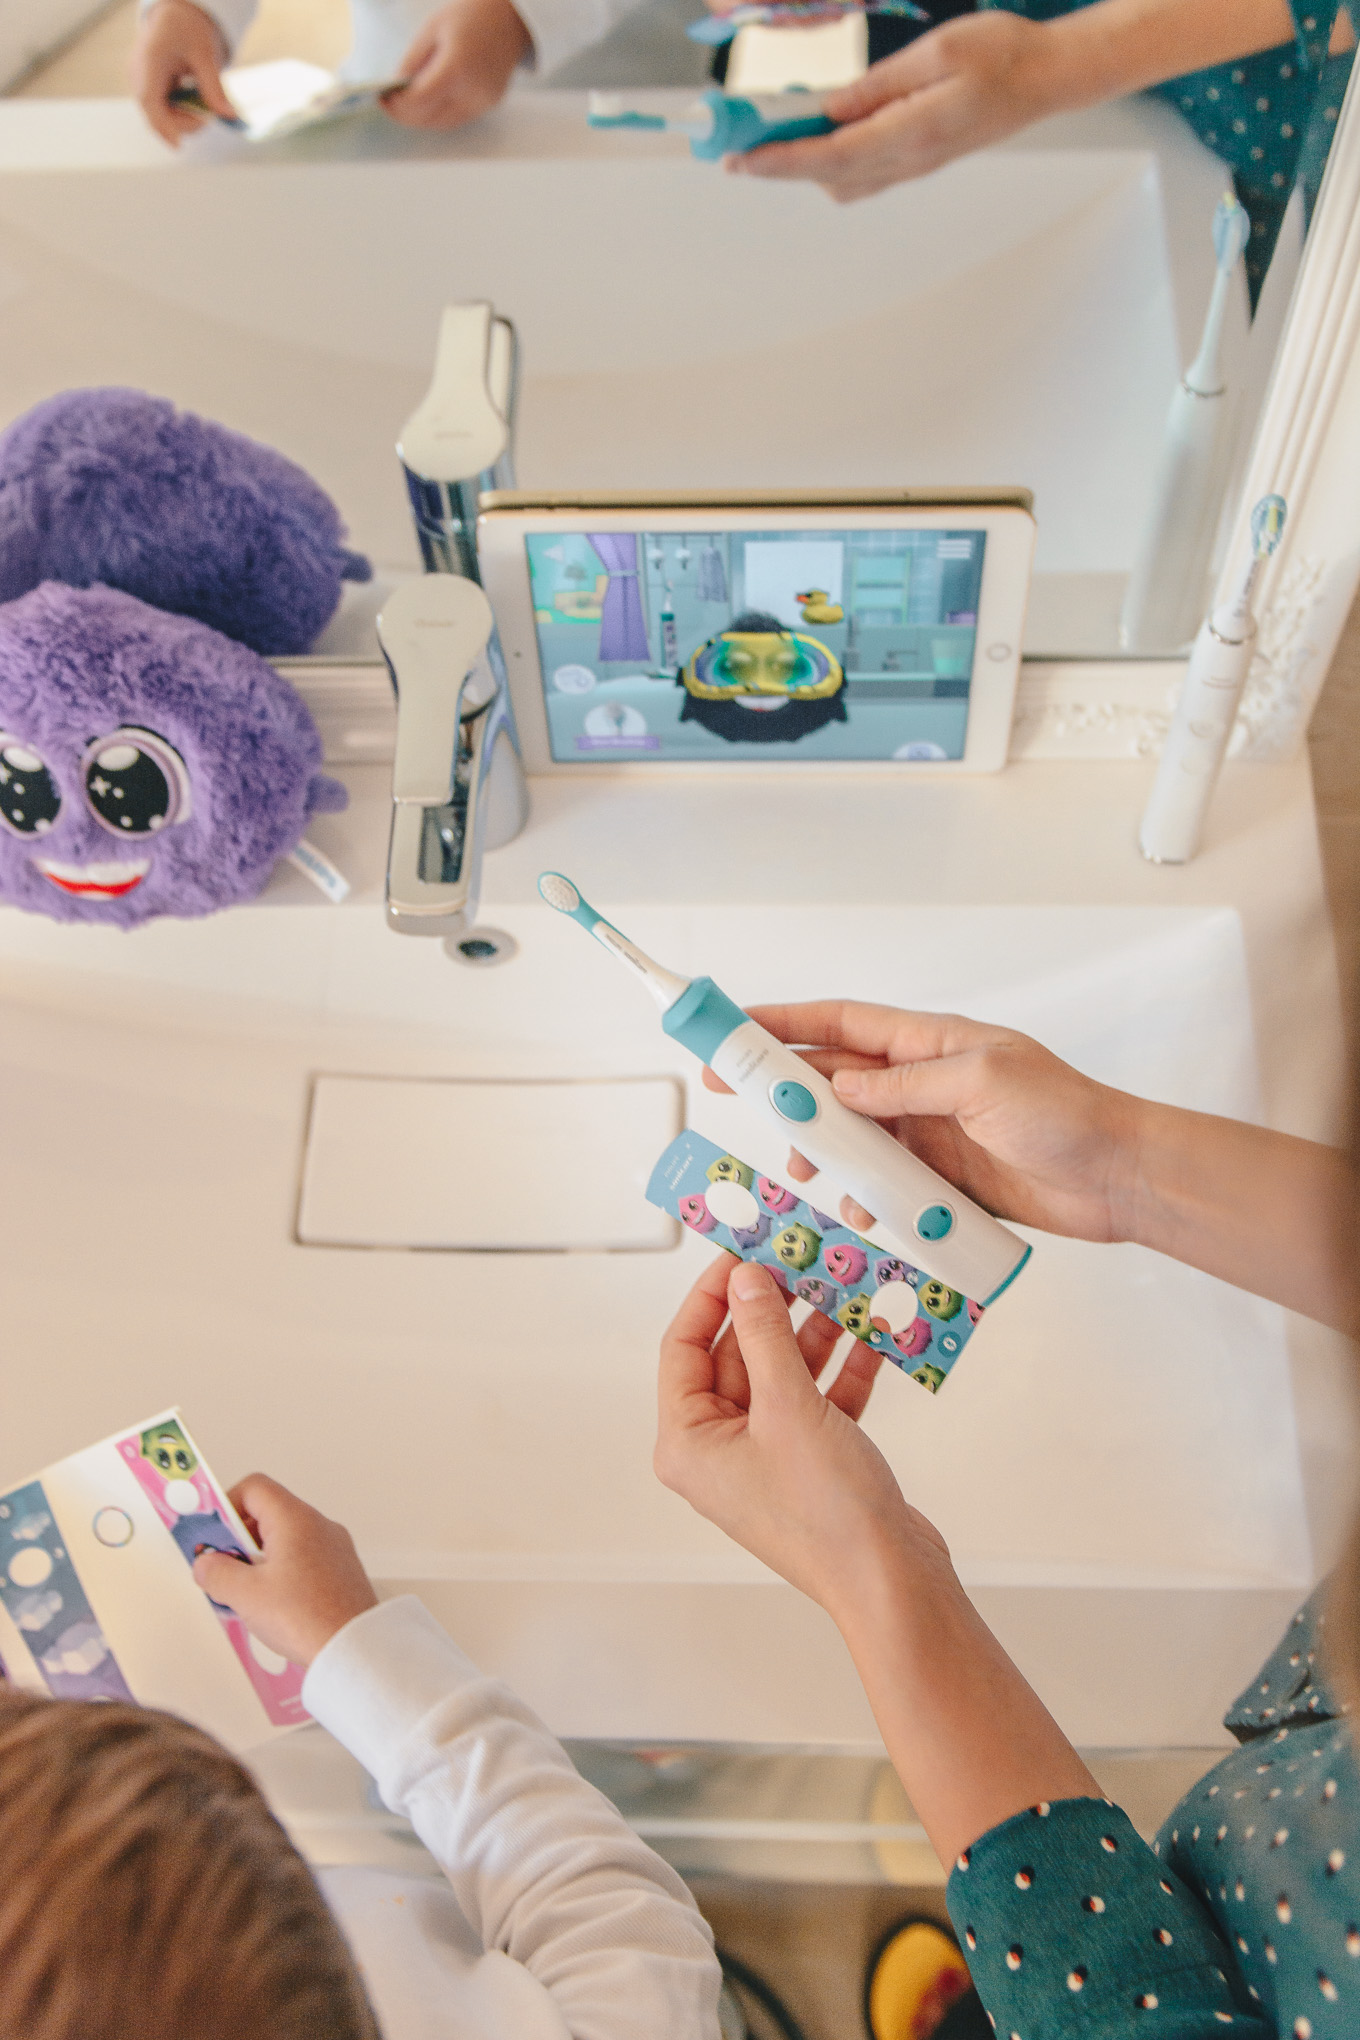 Sonicare kids toothbrush